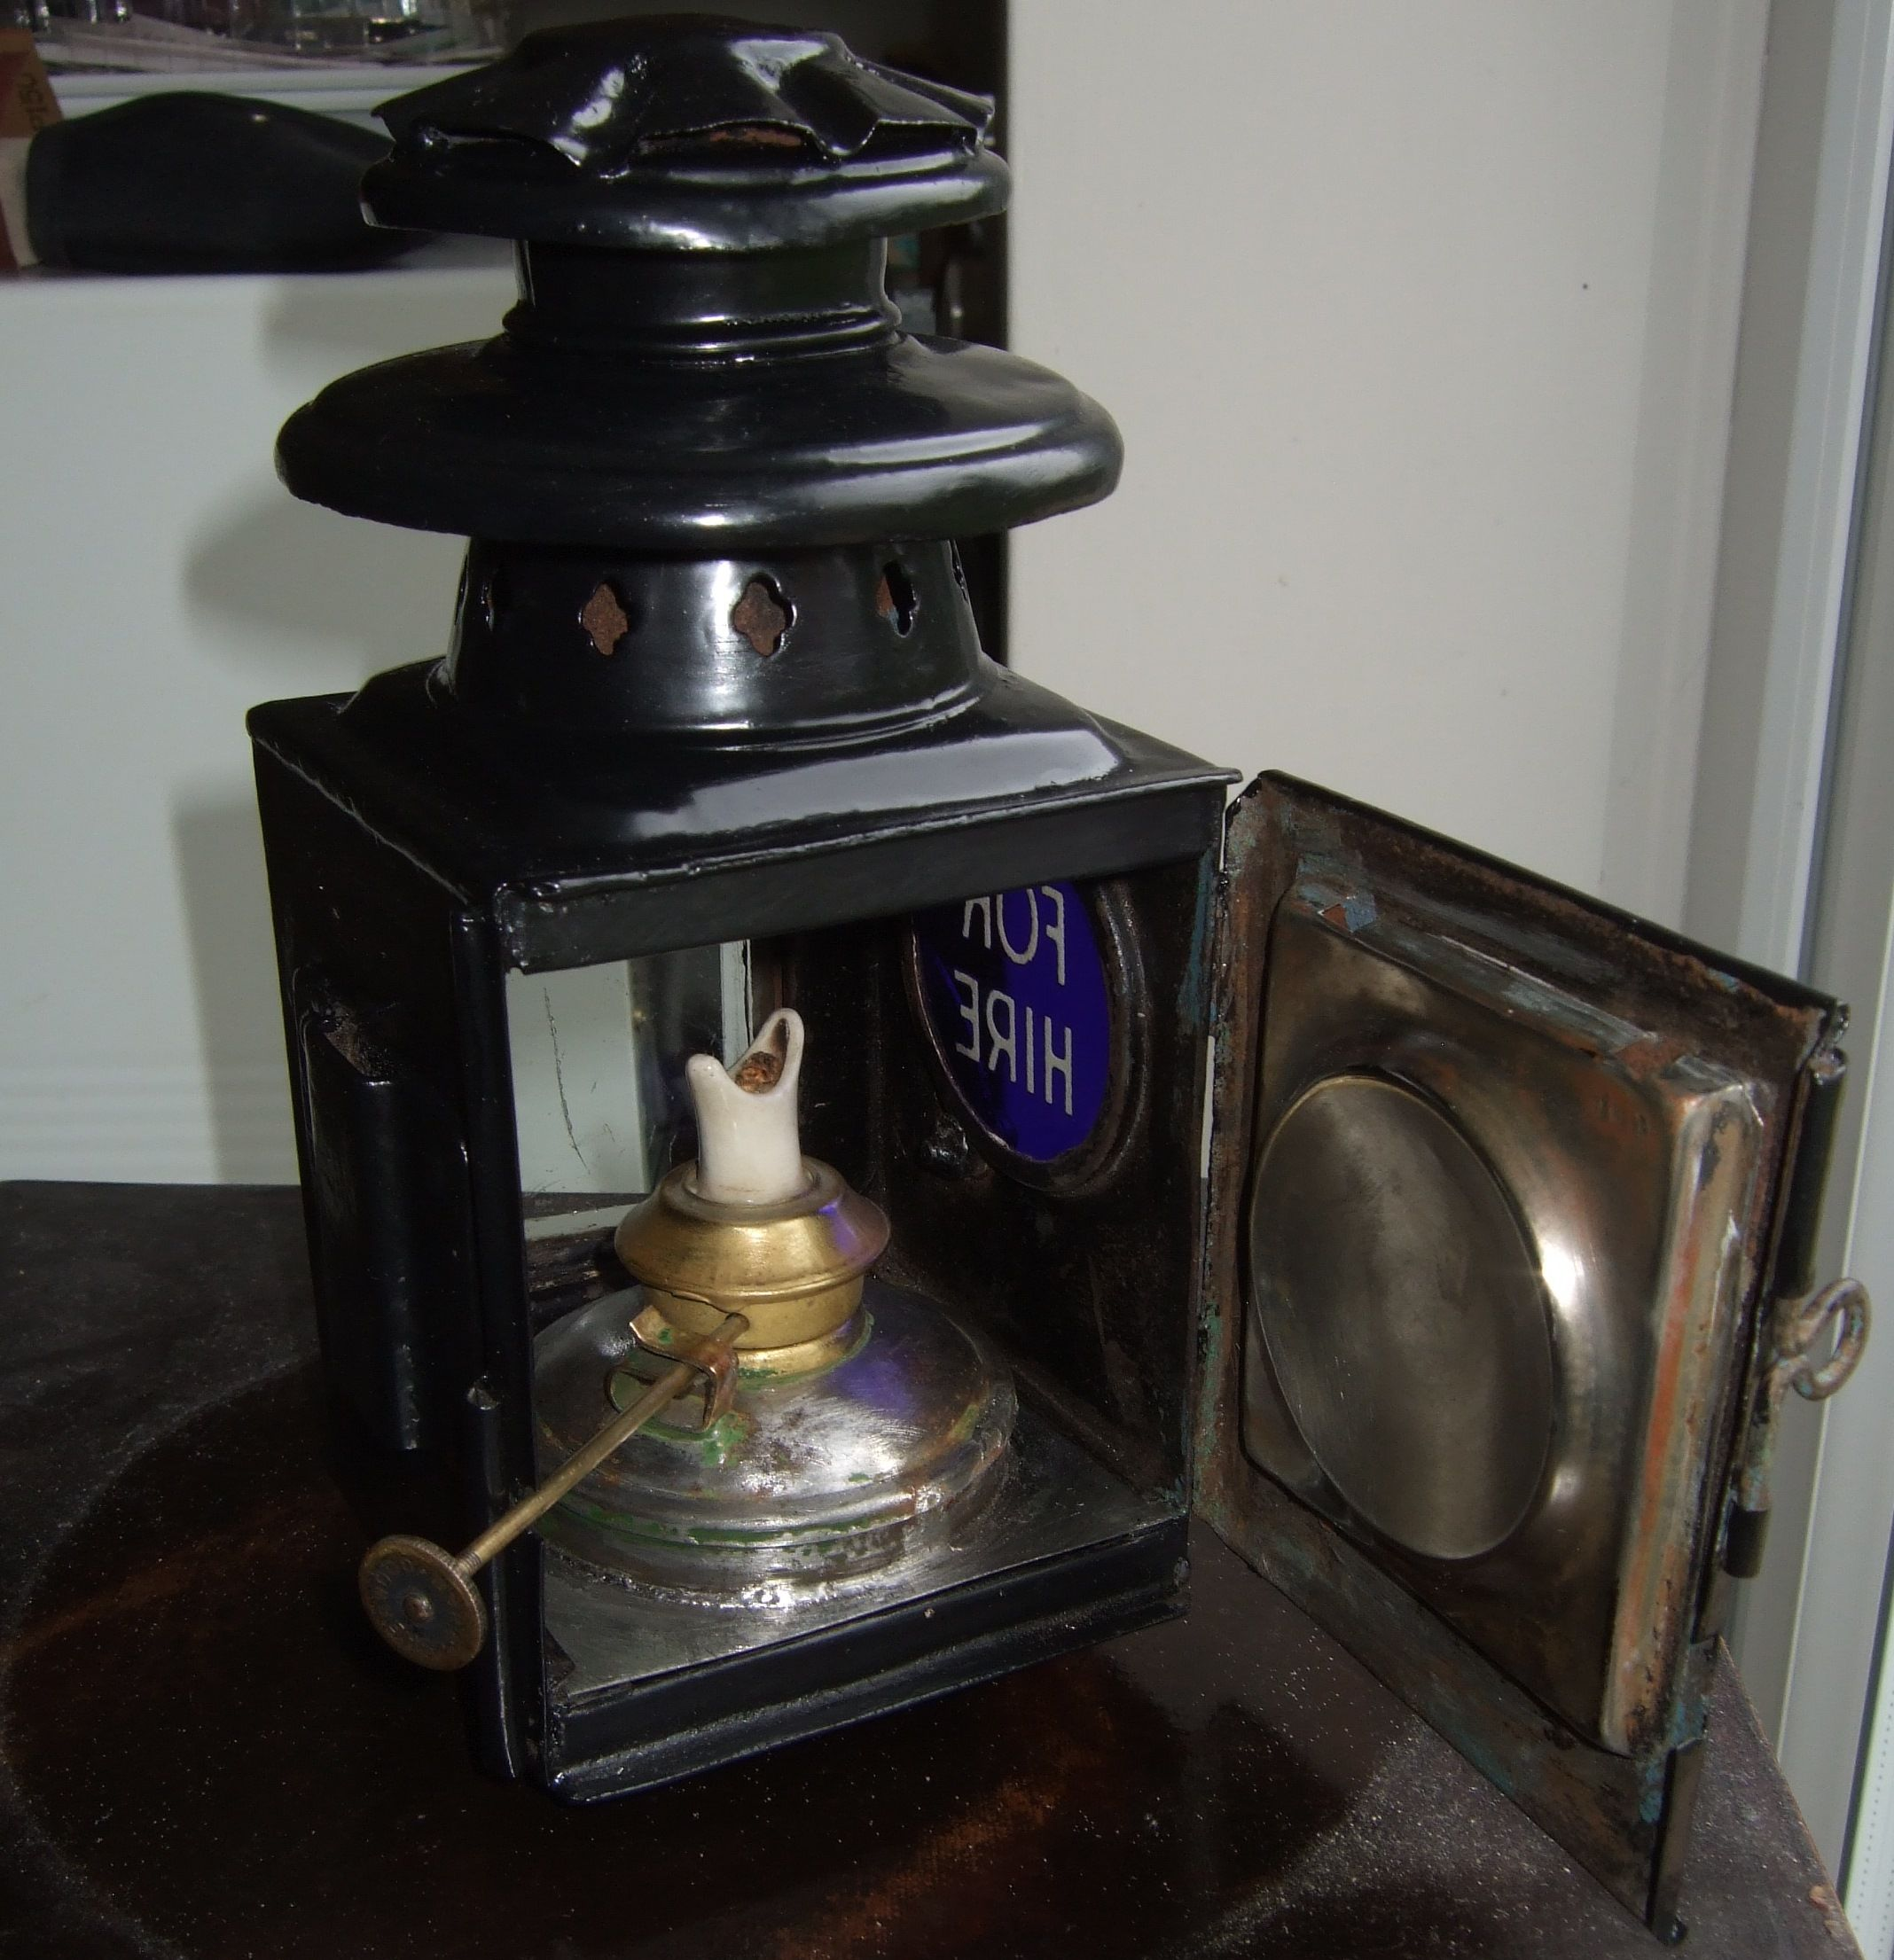 Pin on Vintage Taxi Meter Lamps